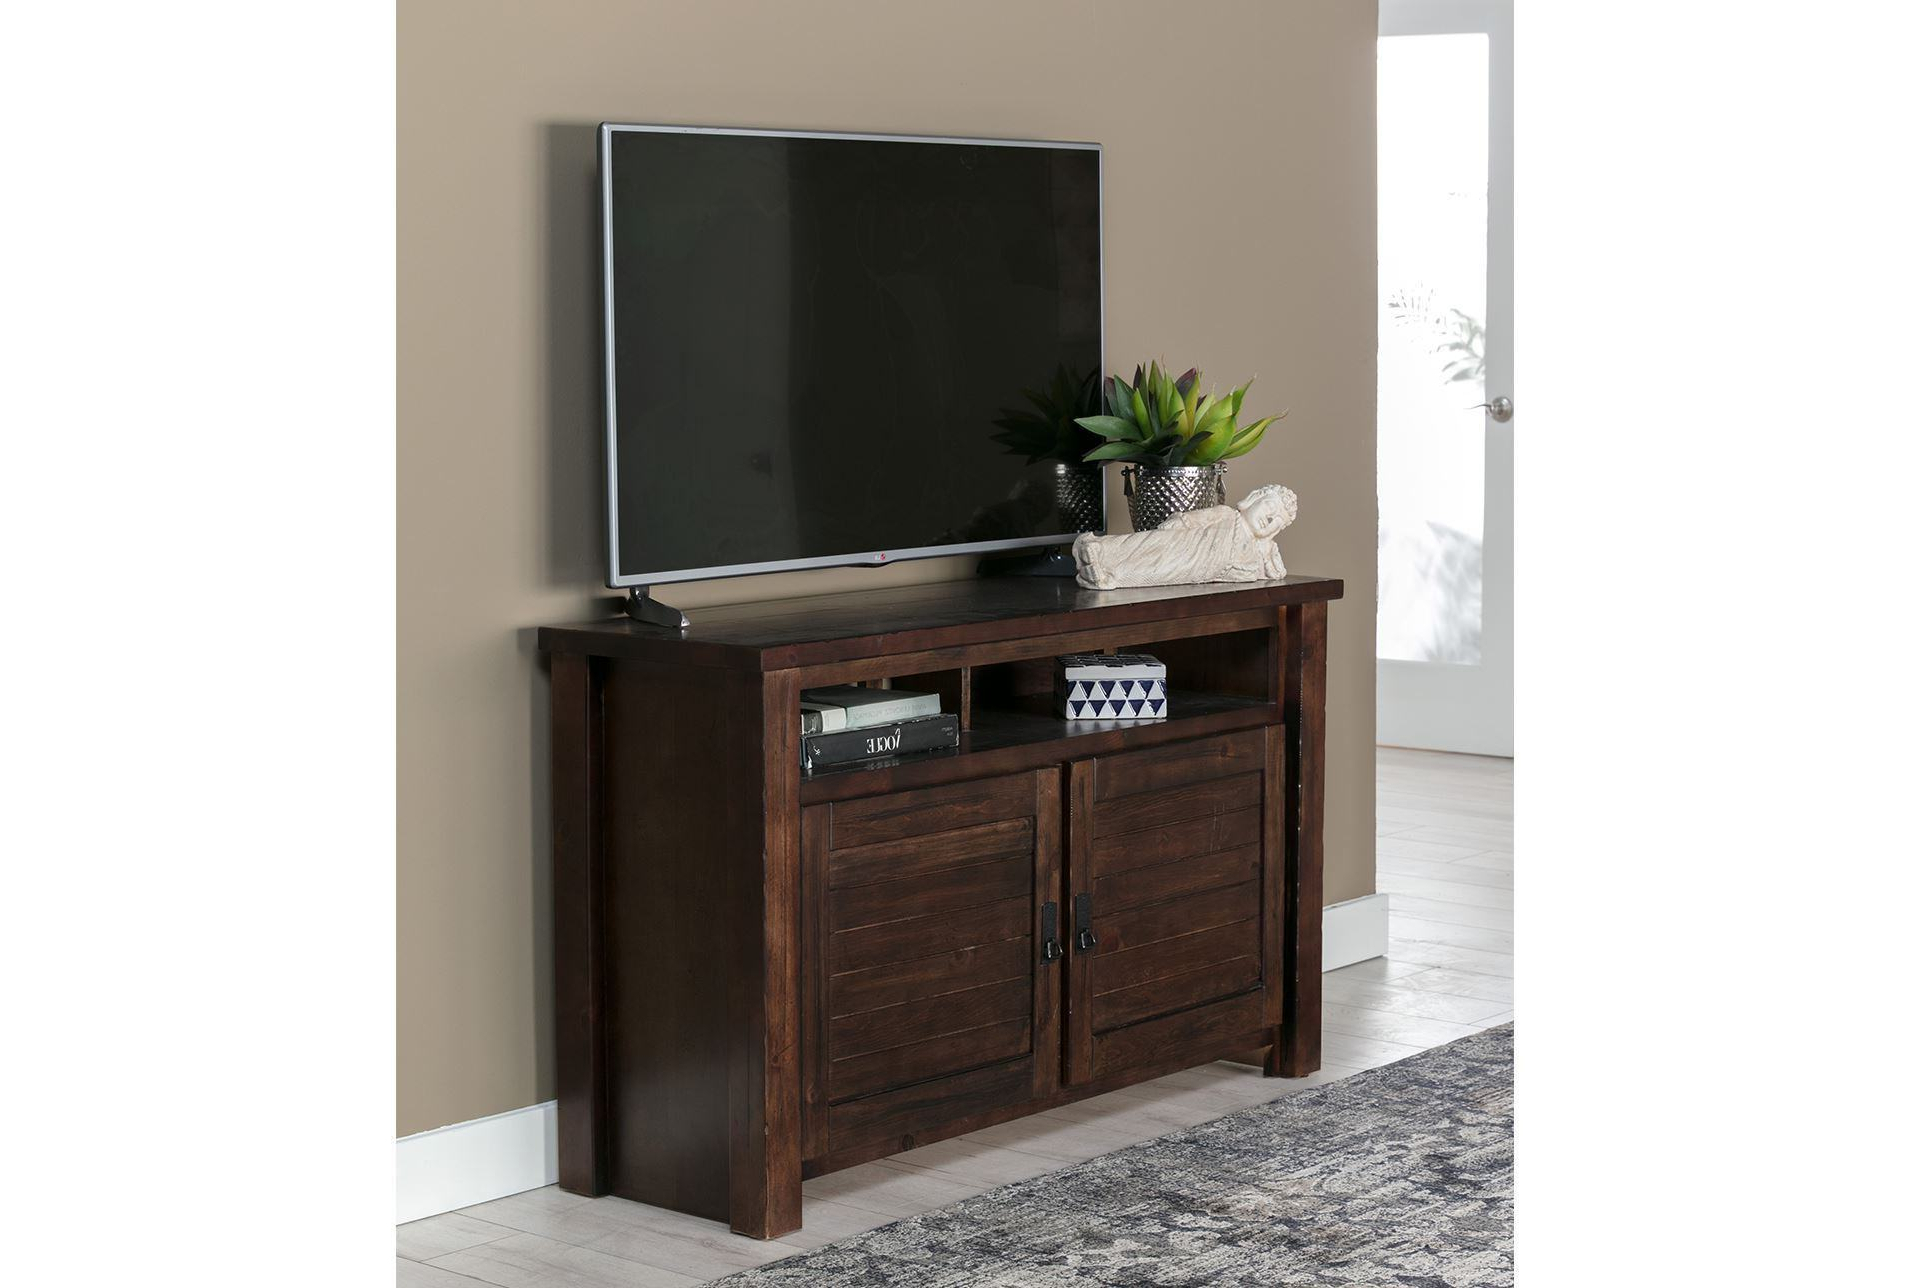 25 Creative 54 Inch Tv Stand Pictures | Cakestandlady Intended For Sinclair Blue 54 Inch Tv Stands (View 3 of 20)